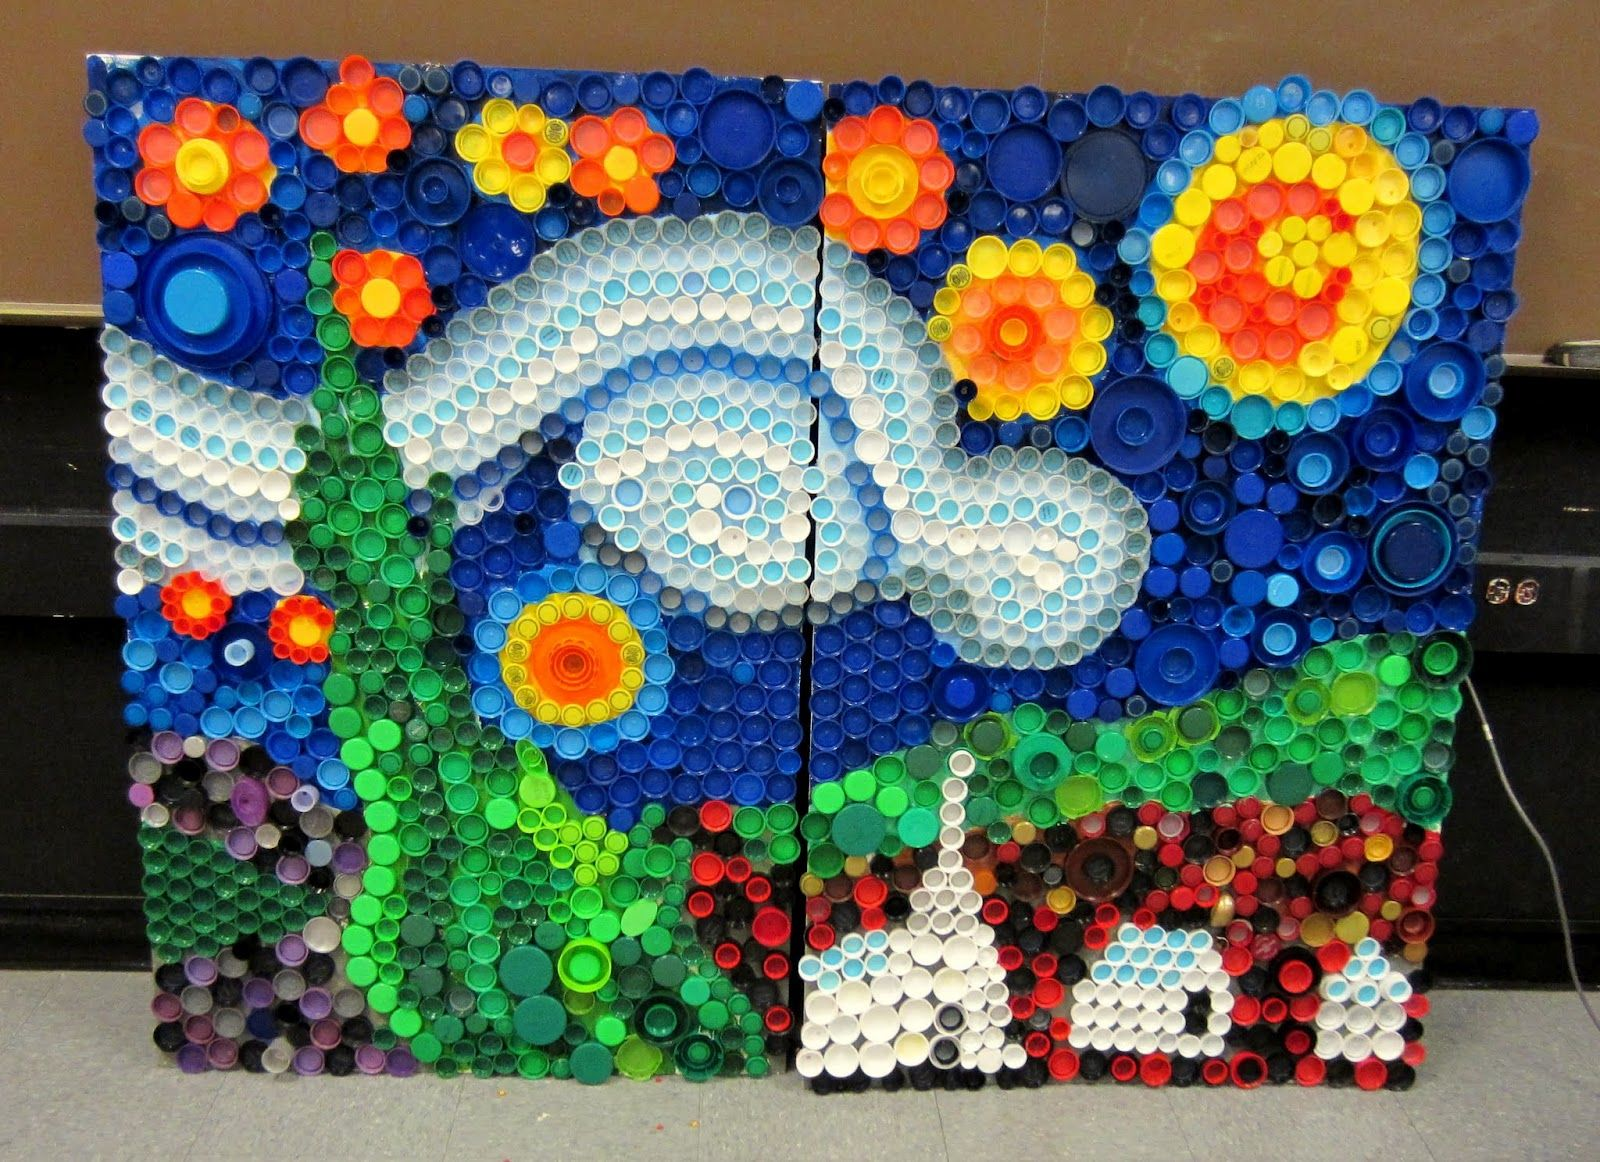 Art ideas for middle school kids every cap counts our for Cool recycling projects